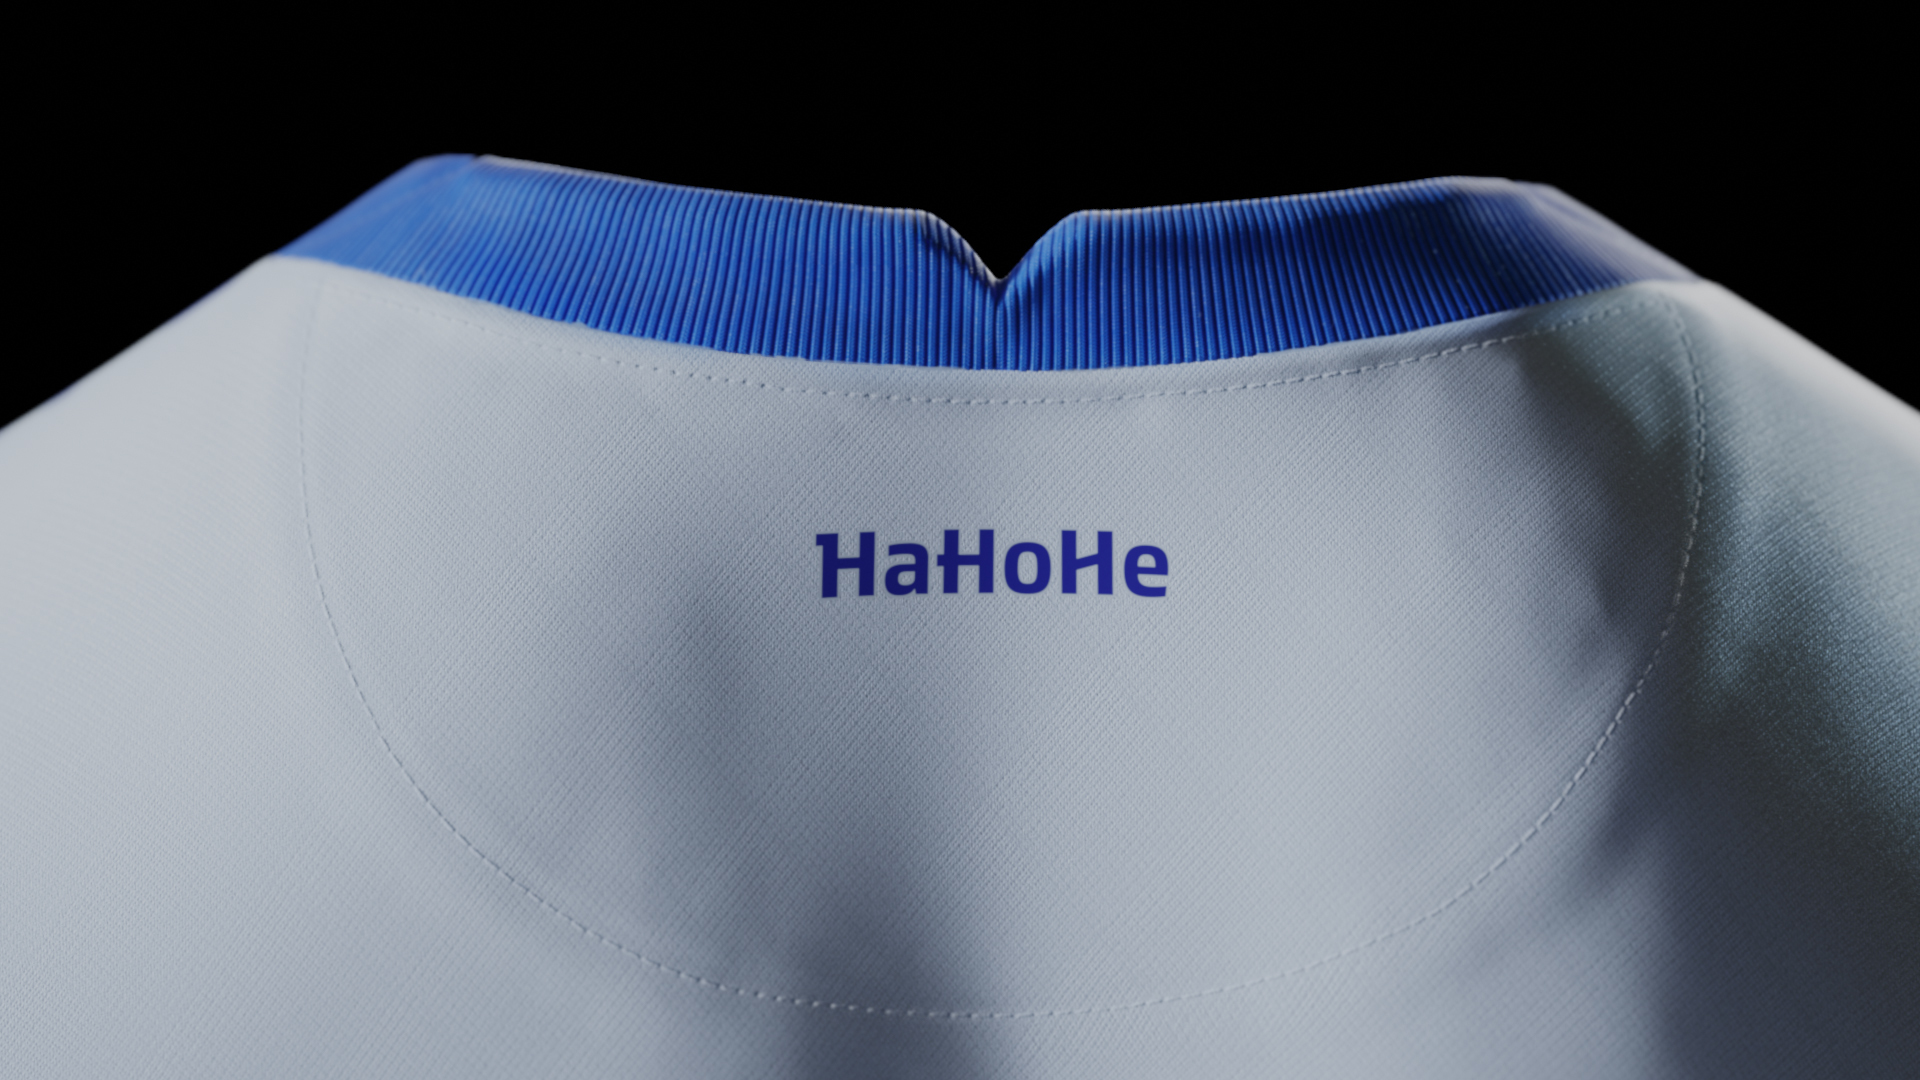 Our slogan 'HaHoHe' on the inside of the collar.